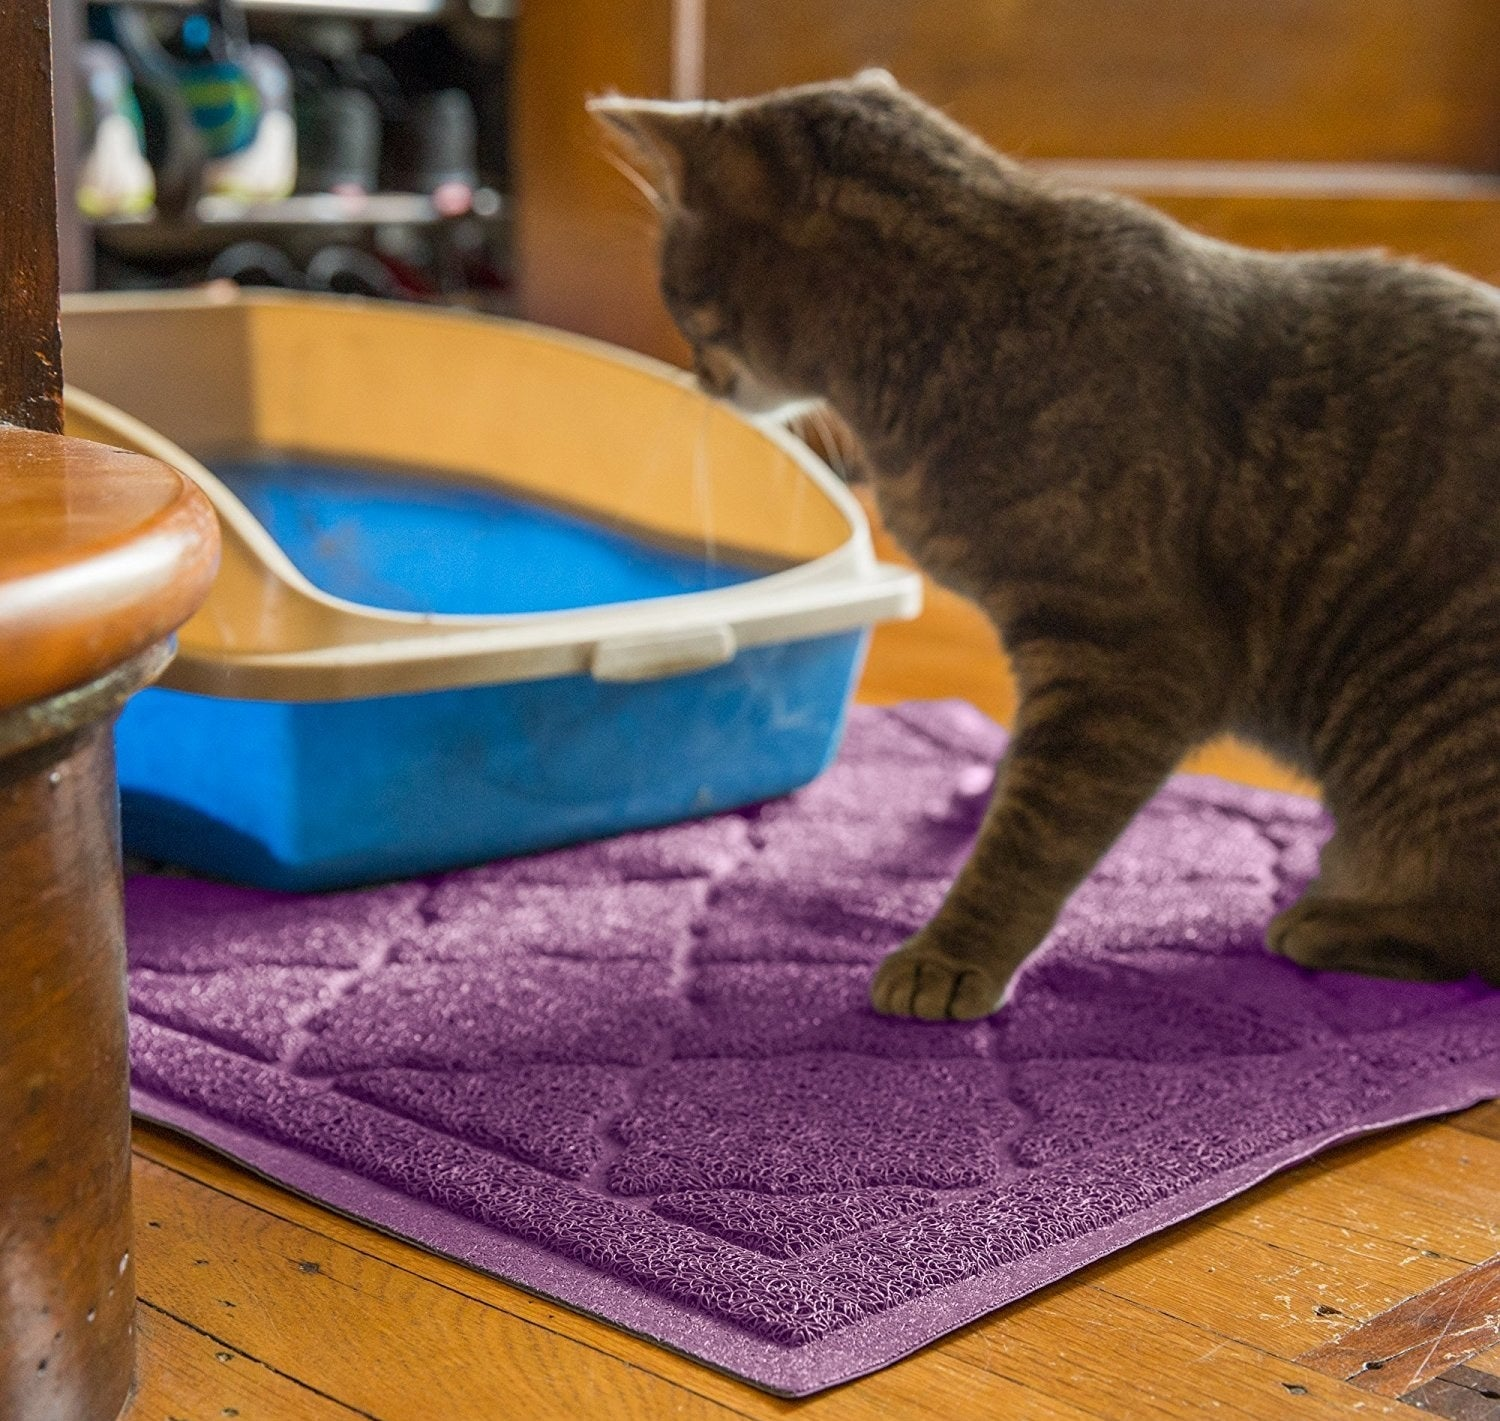 """Promising Review: """"The pile is designed to grab and trap litter from little paws leaving the litter box. It is easy to vacuum, or just do like I do, and take it outdoors for a good shake now and then. Some mats are squishy and my cats won't walk on them, but this one has a nice rough texture they seem to like. Since putting this under the litter box, I have noticed a great deal less scattered litter on the floor around it, so I know it's working. I'm thinking of ordering another one to put under the feed and water bowls, to catch stray food, too."""" –DeborahPrice: $17.99+ Rating: 4.6 out of 5 Colors: seven"""